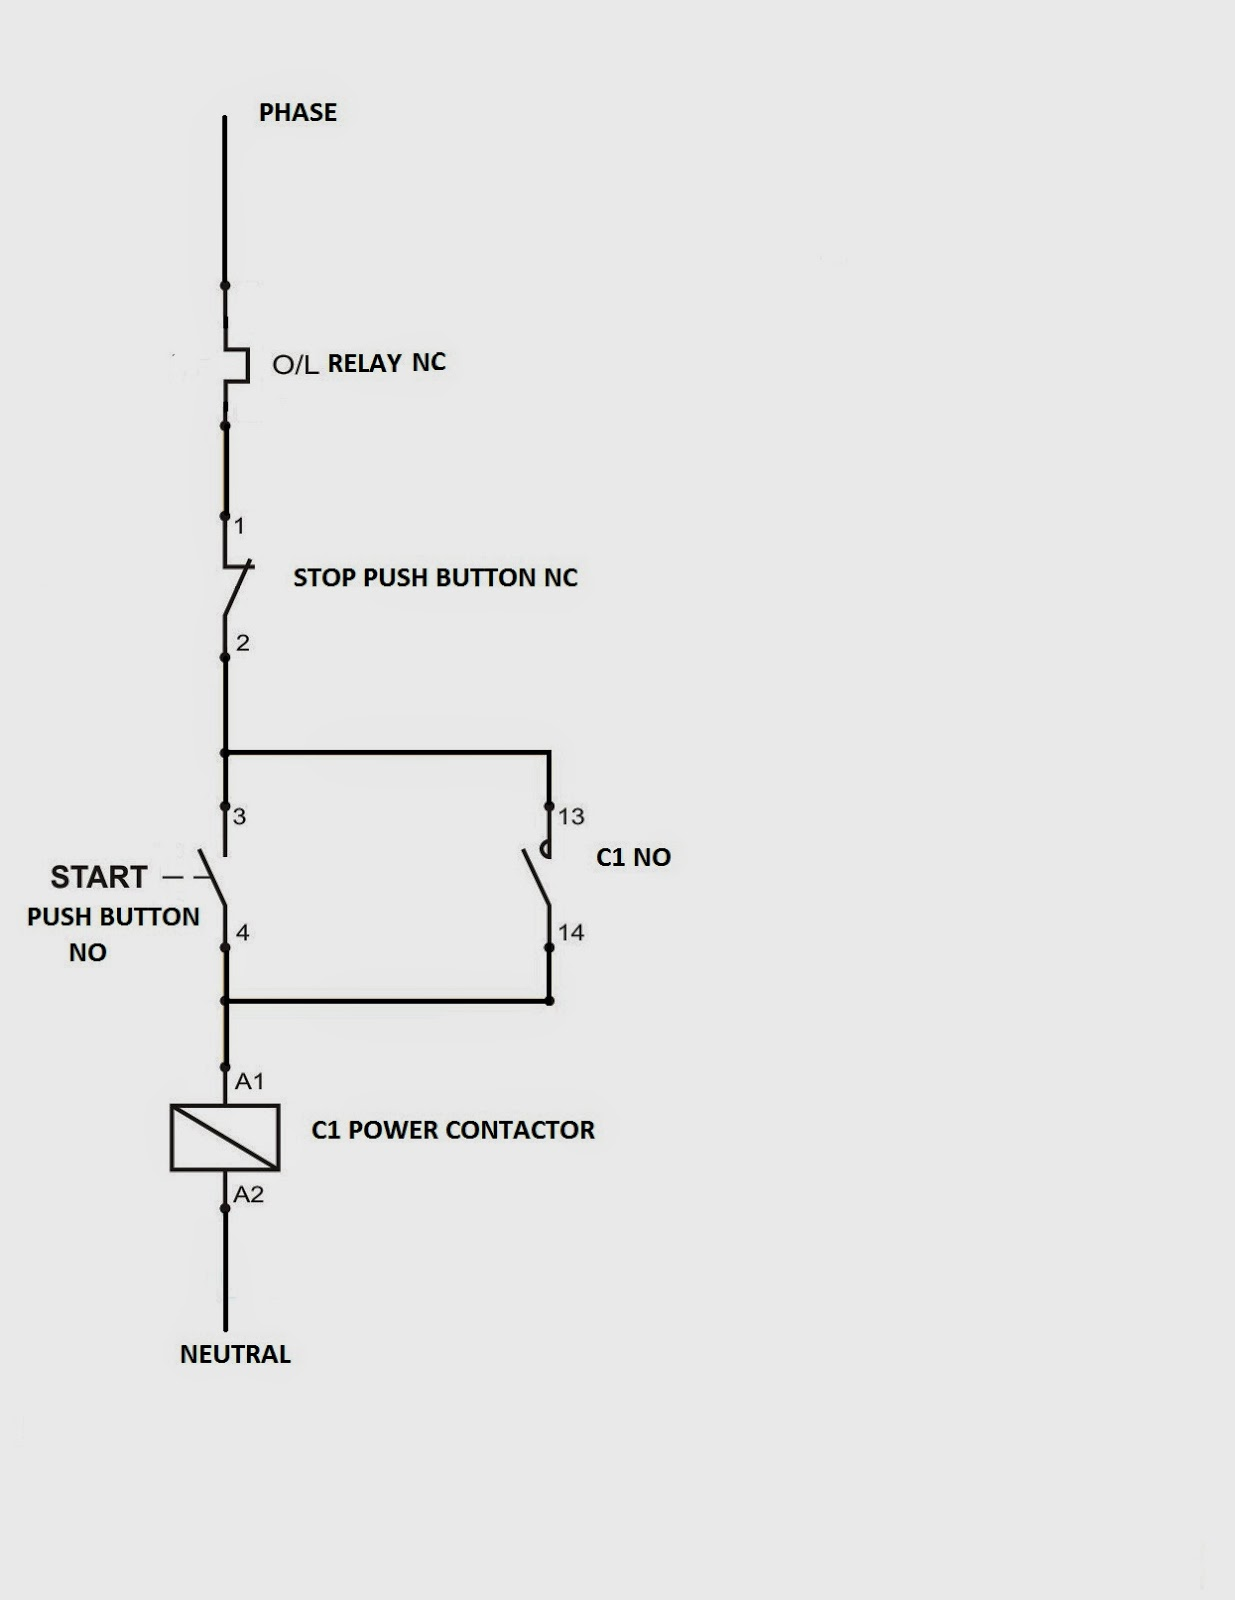 Overload relay working principle and features of thermal motor